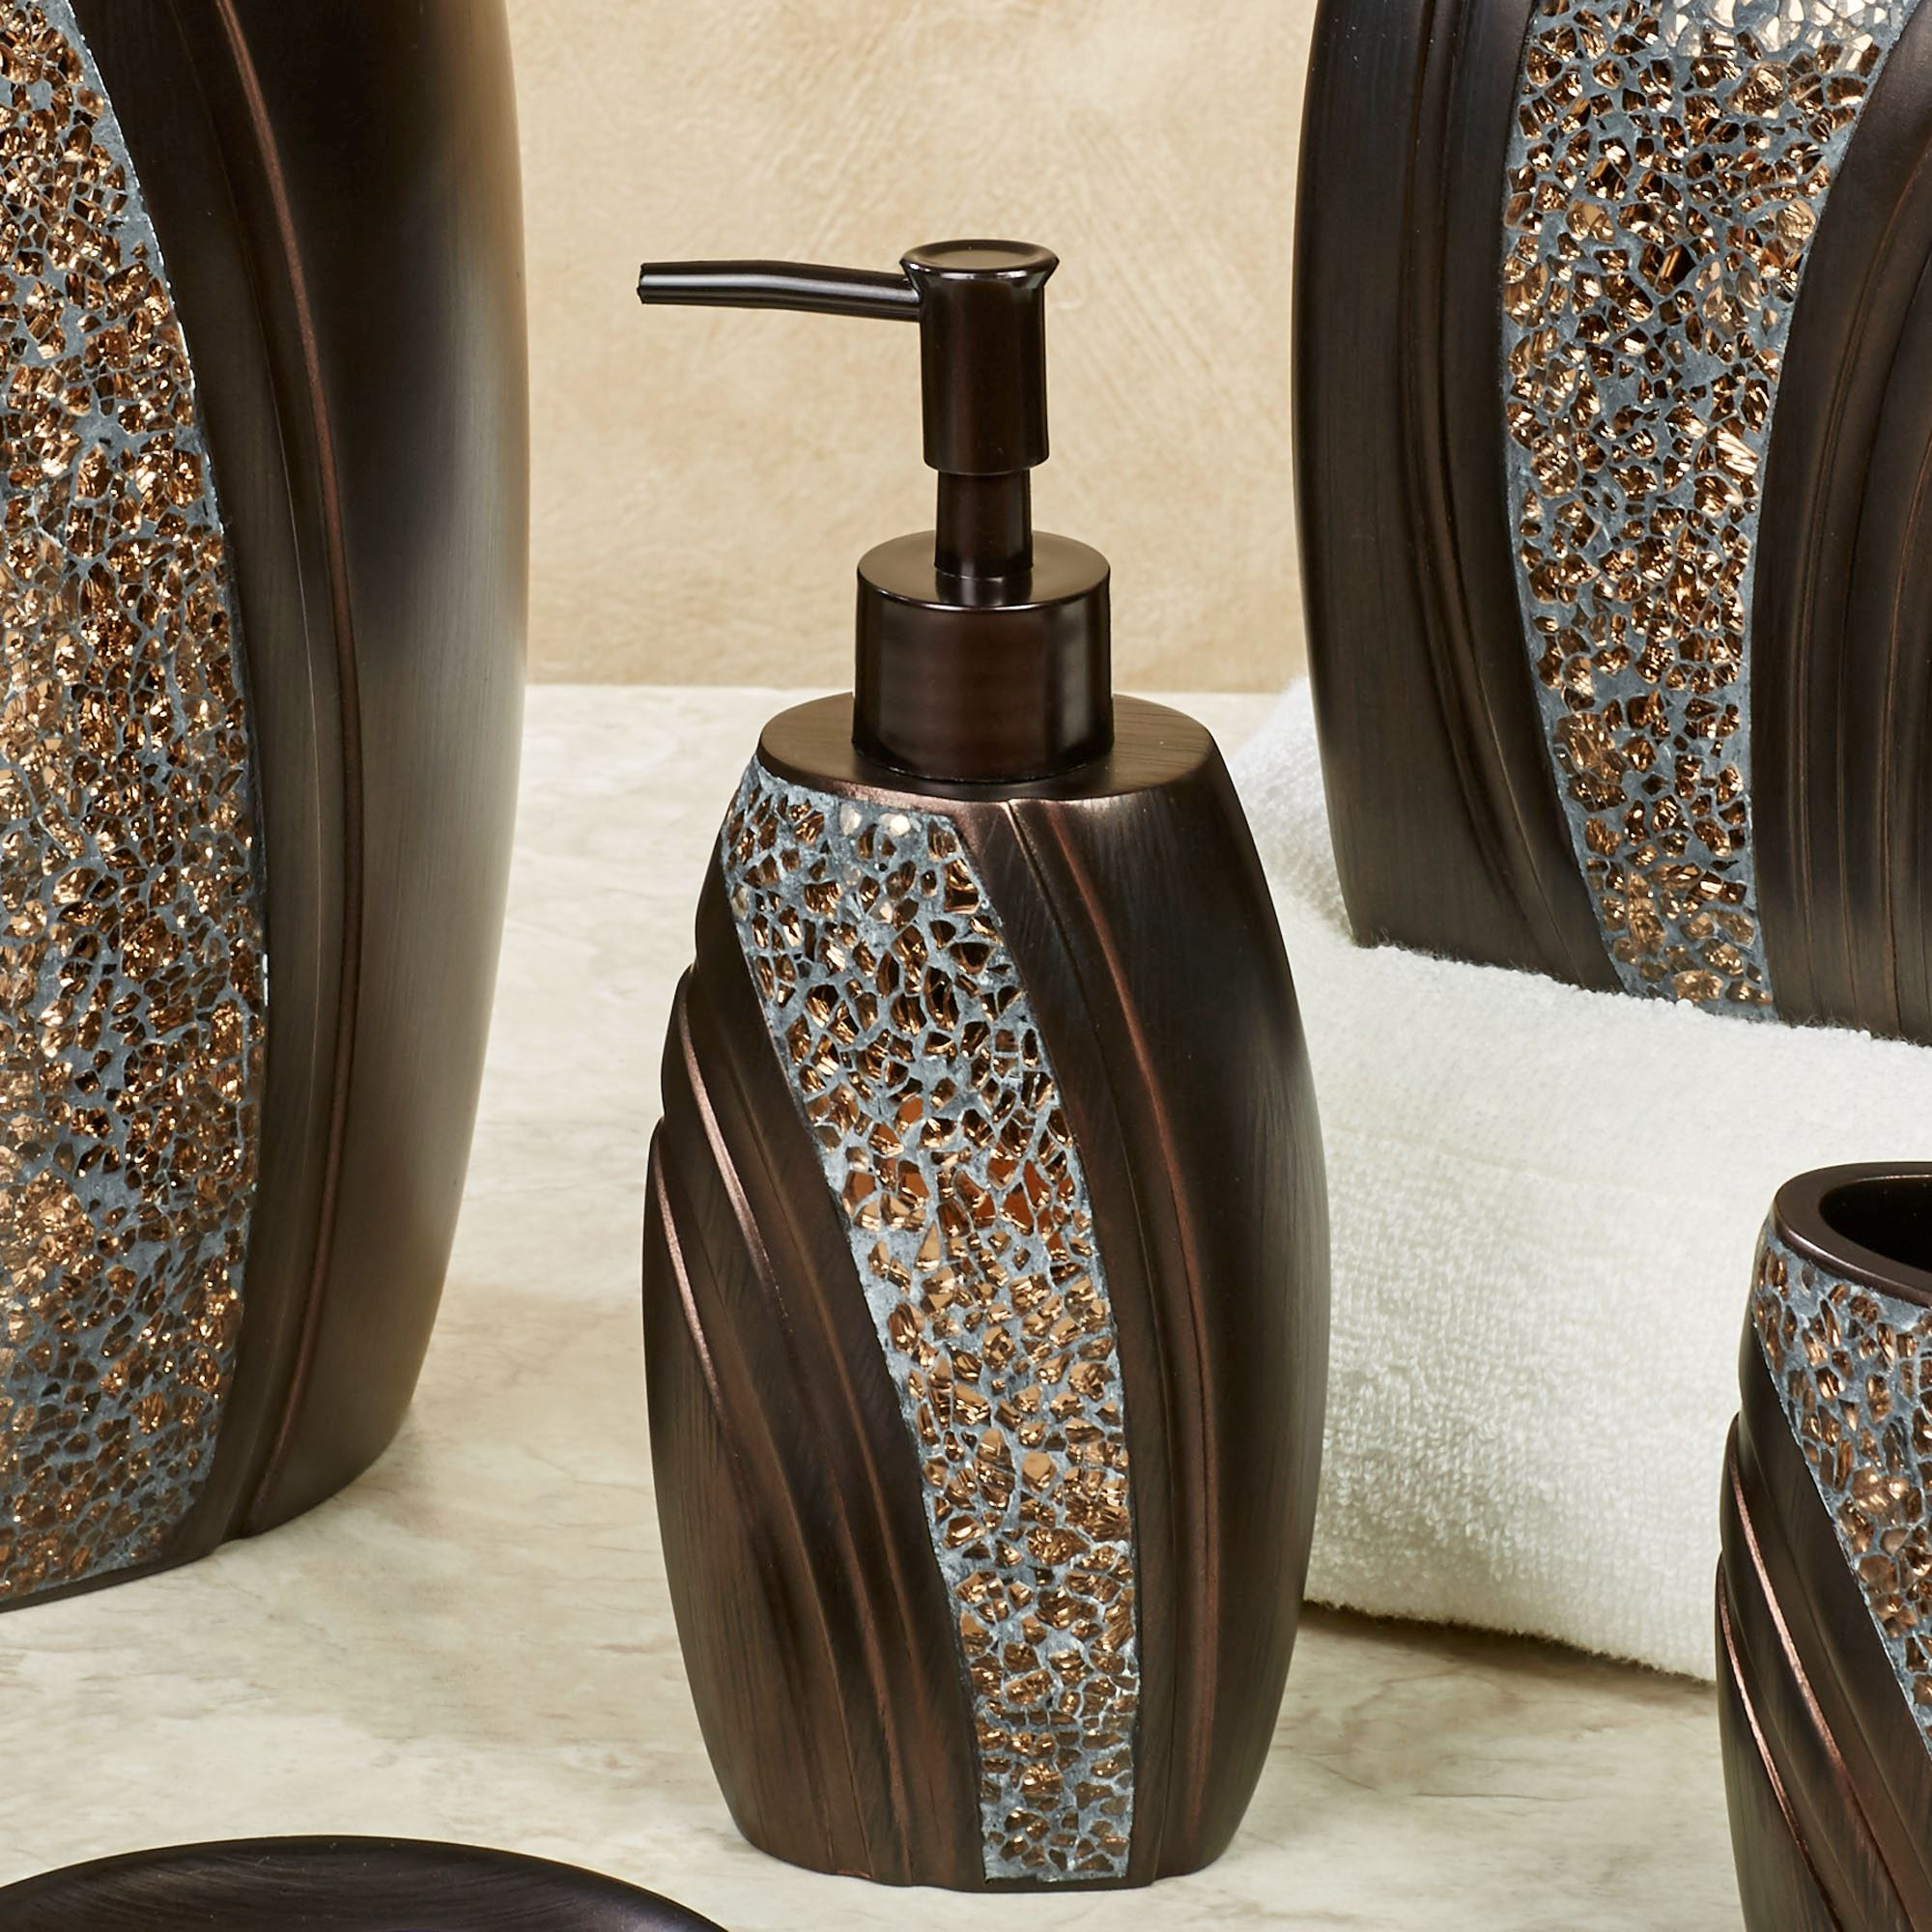 The best 100 brown mosaic bathroom accessories image for Bella lux bathroom accessories uk